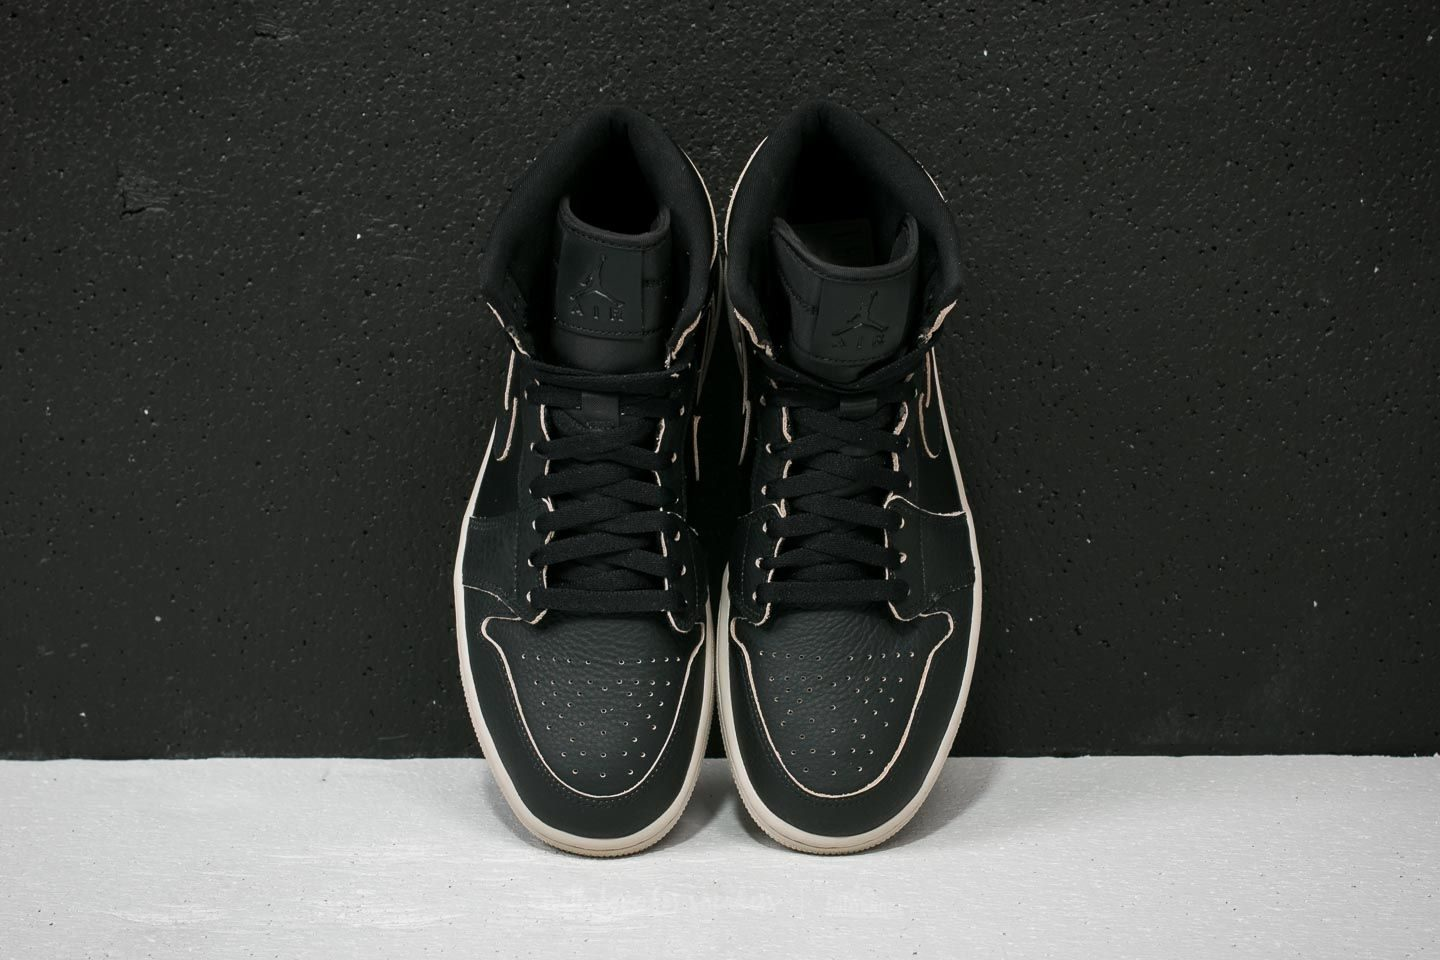 air-jordan-1-retro-high-premium-black-black-desert-sand